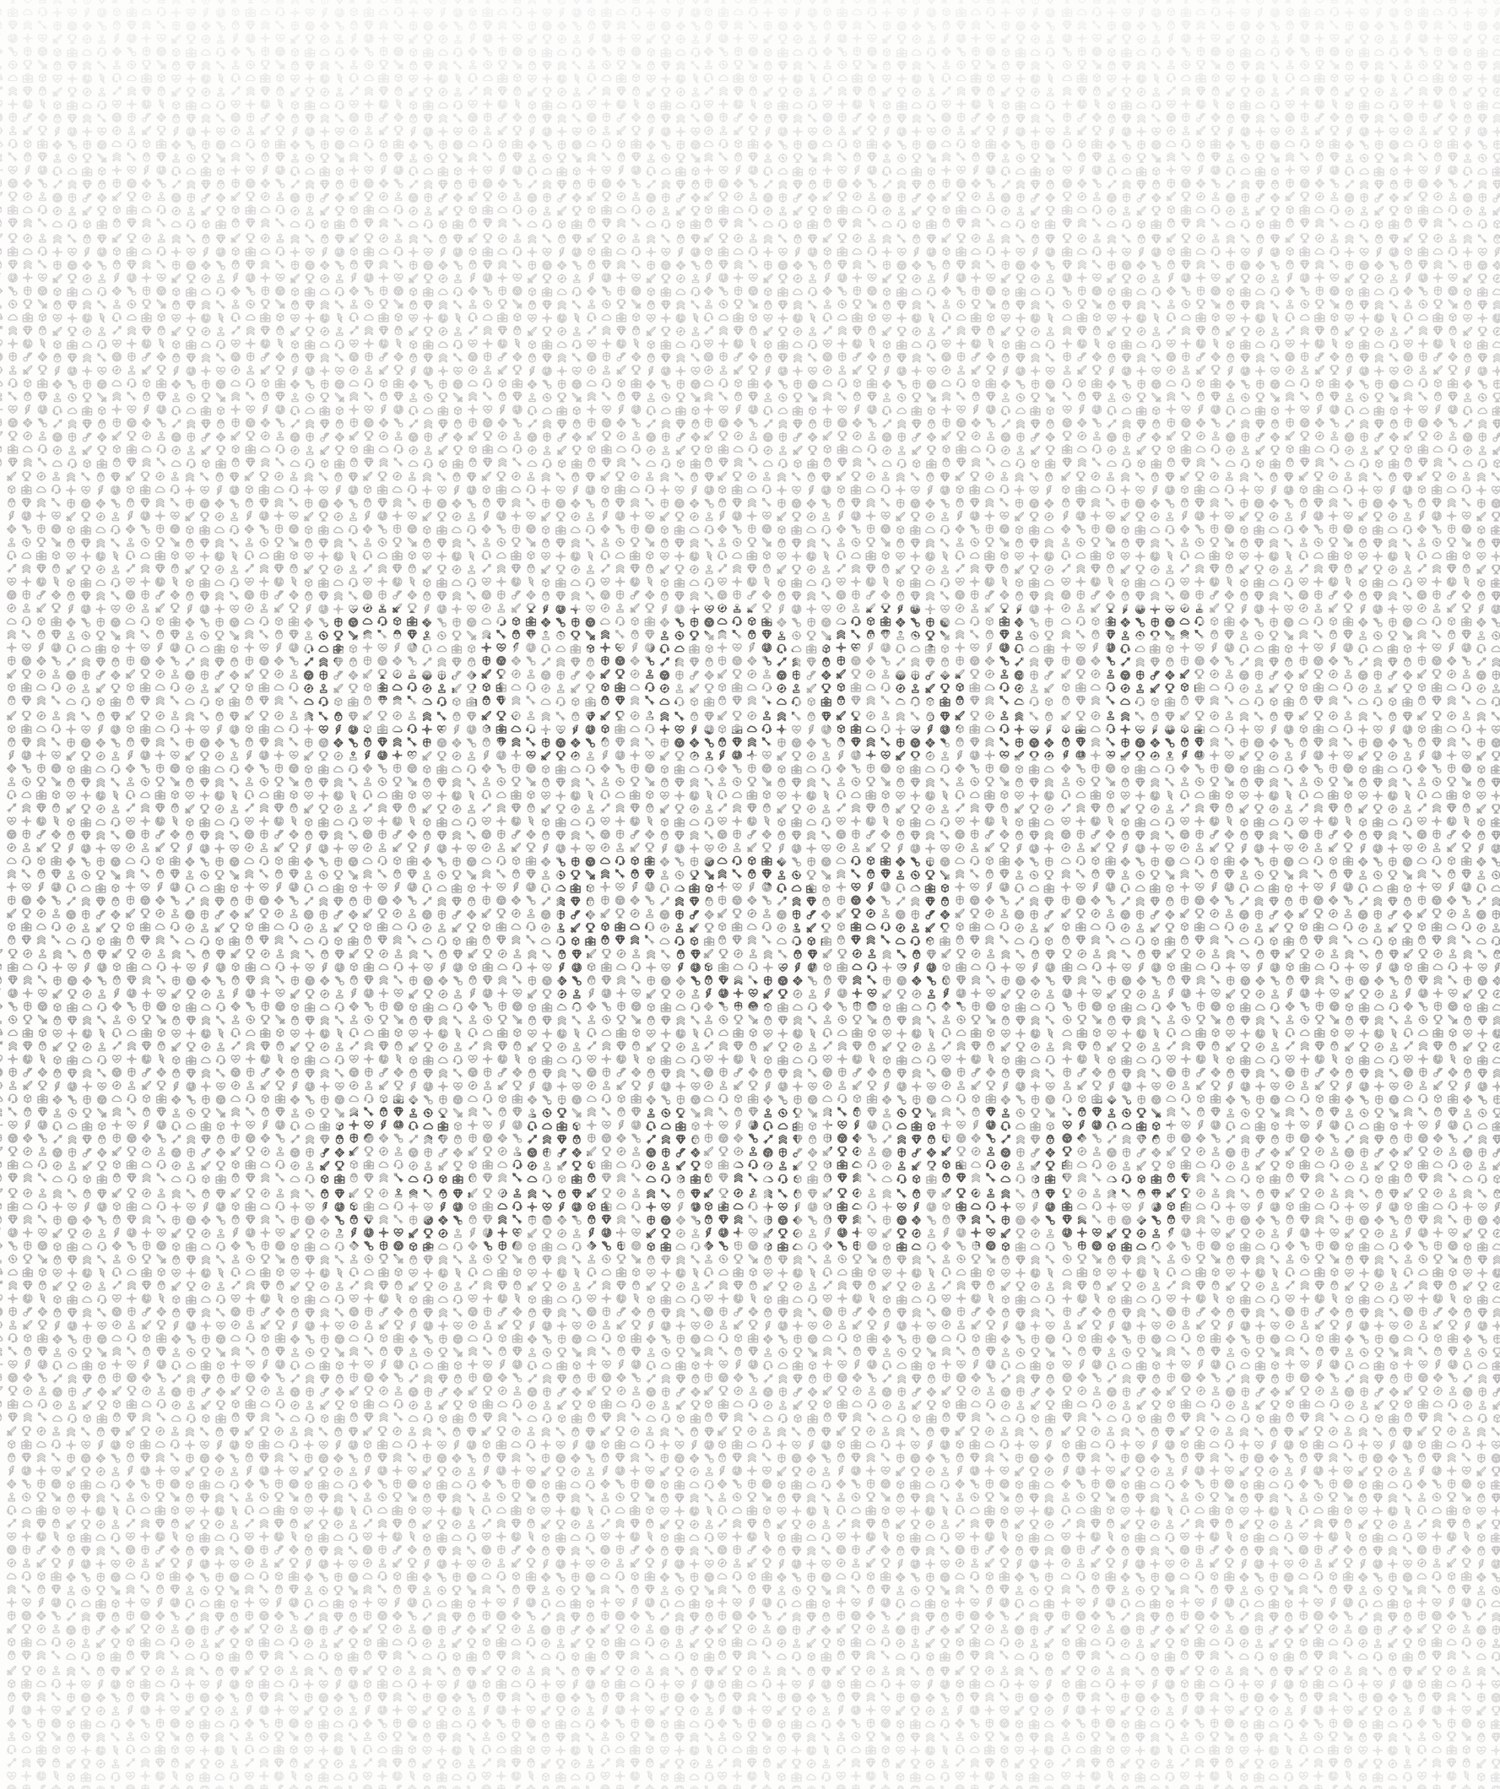 Google Gaming Convention